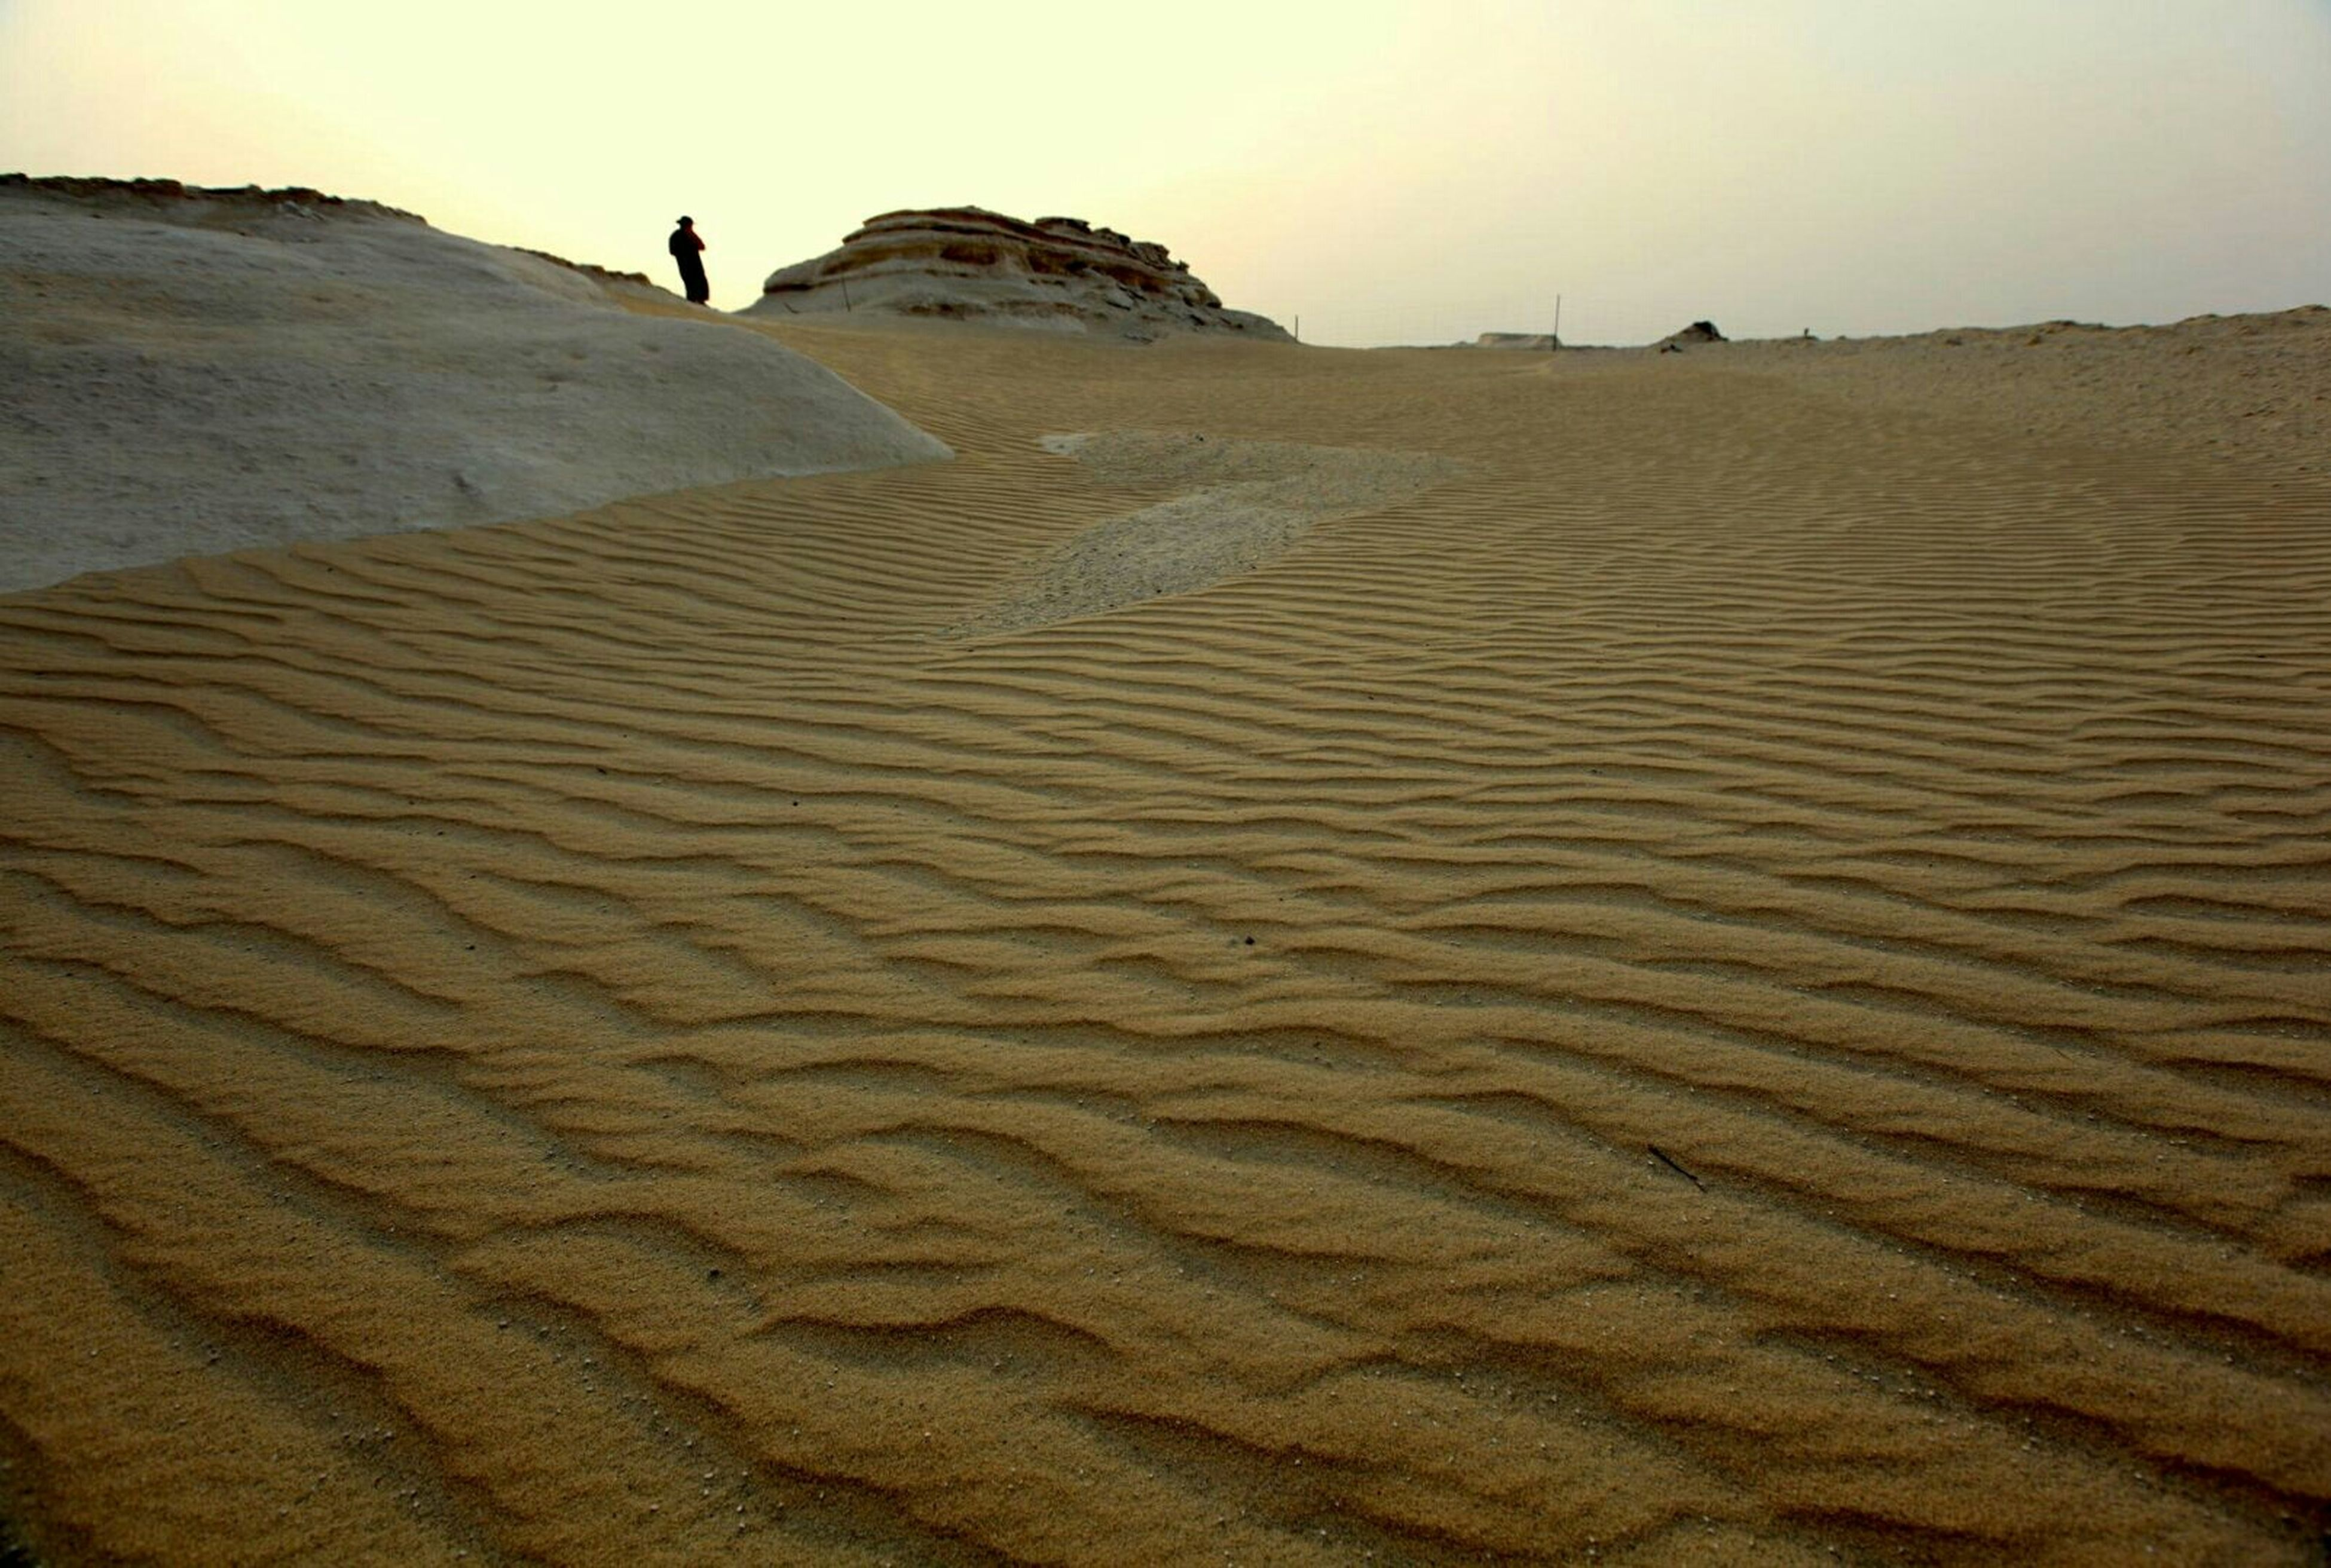 sand, beach, sand dune, tranquility, tranquil scene, desert, arid climate, nature, scenics, beauty in nature, landscape, sky, footprint, remote, vacations, leisure activity, walking, shore